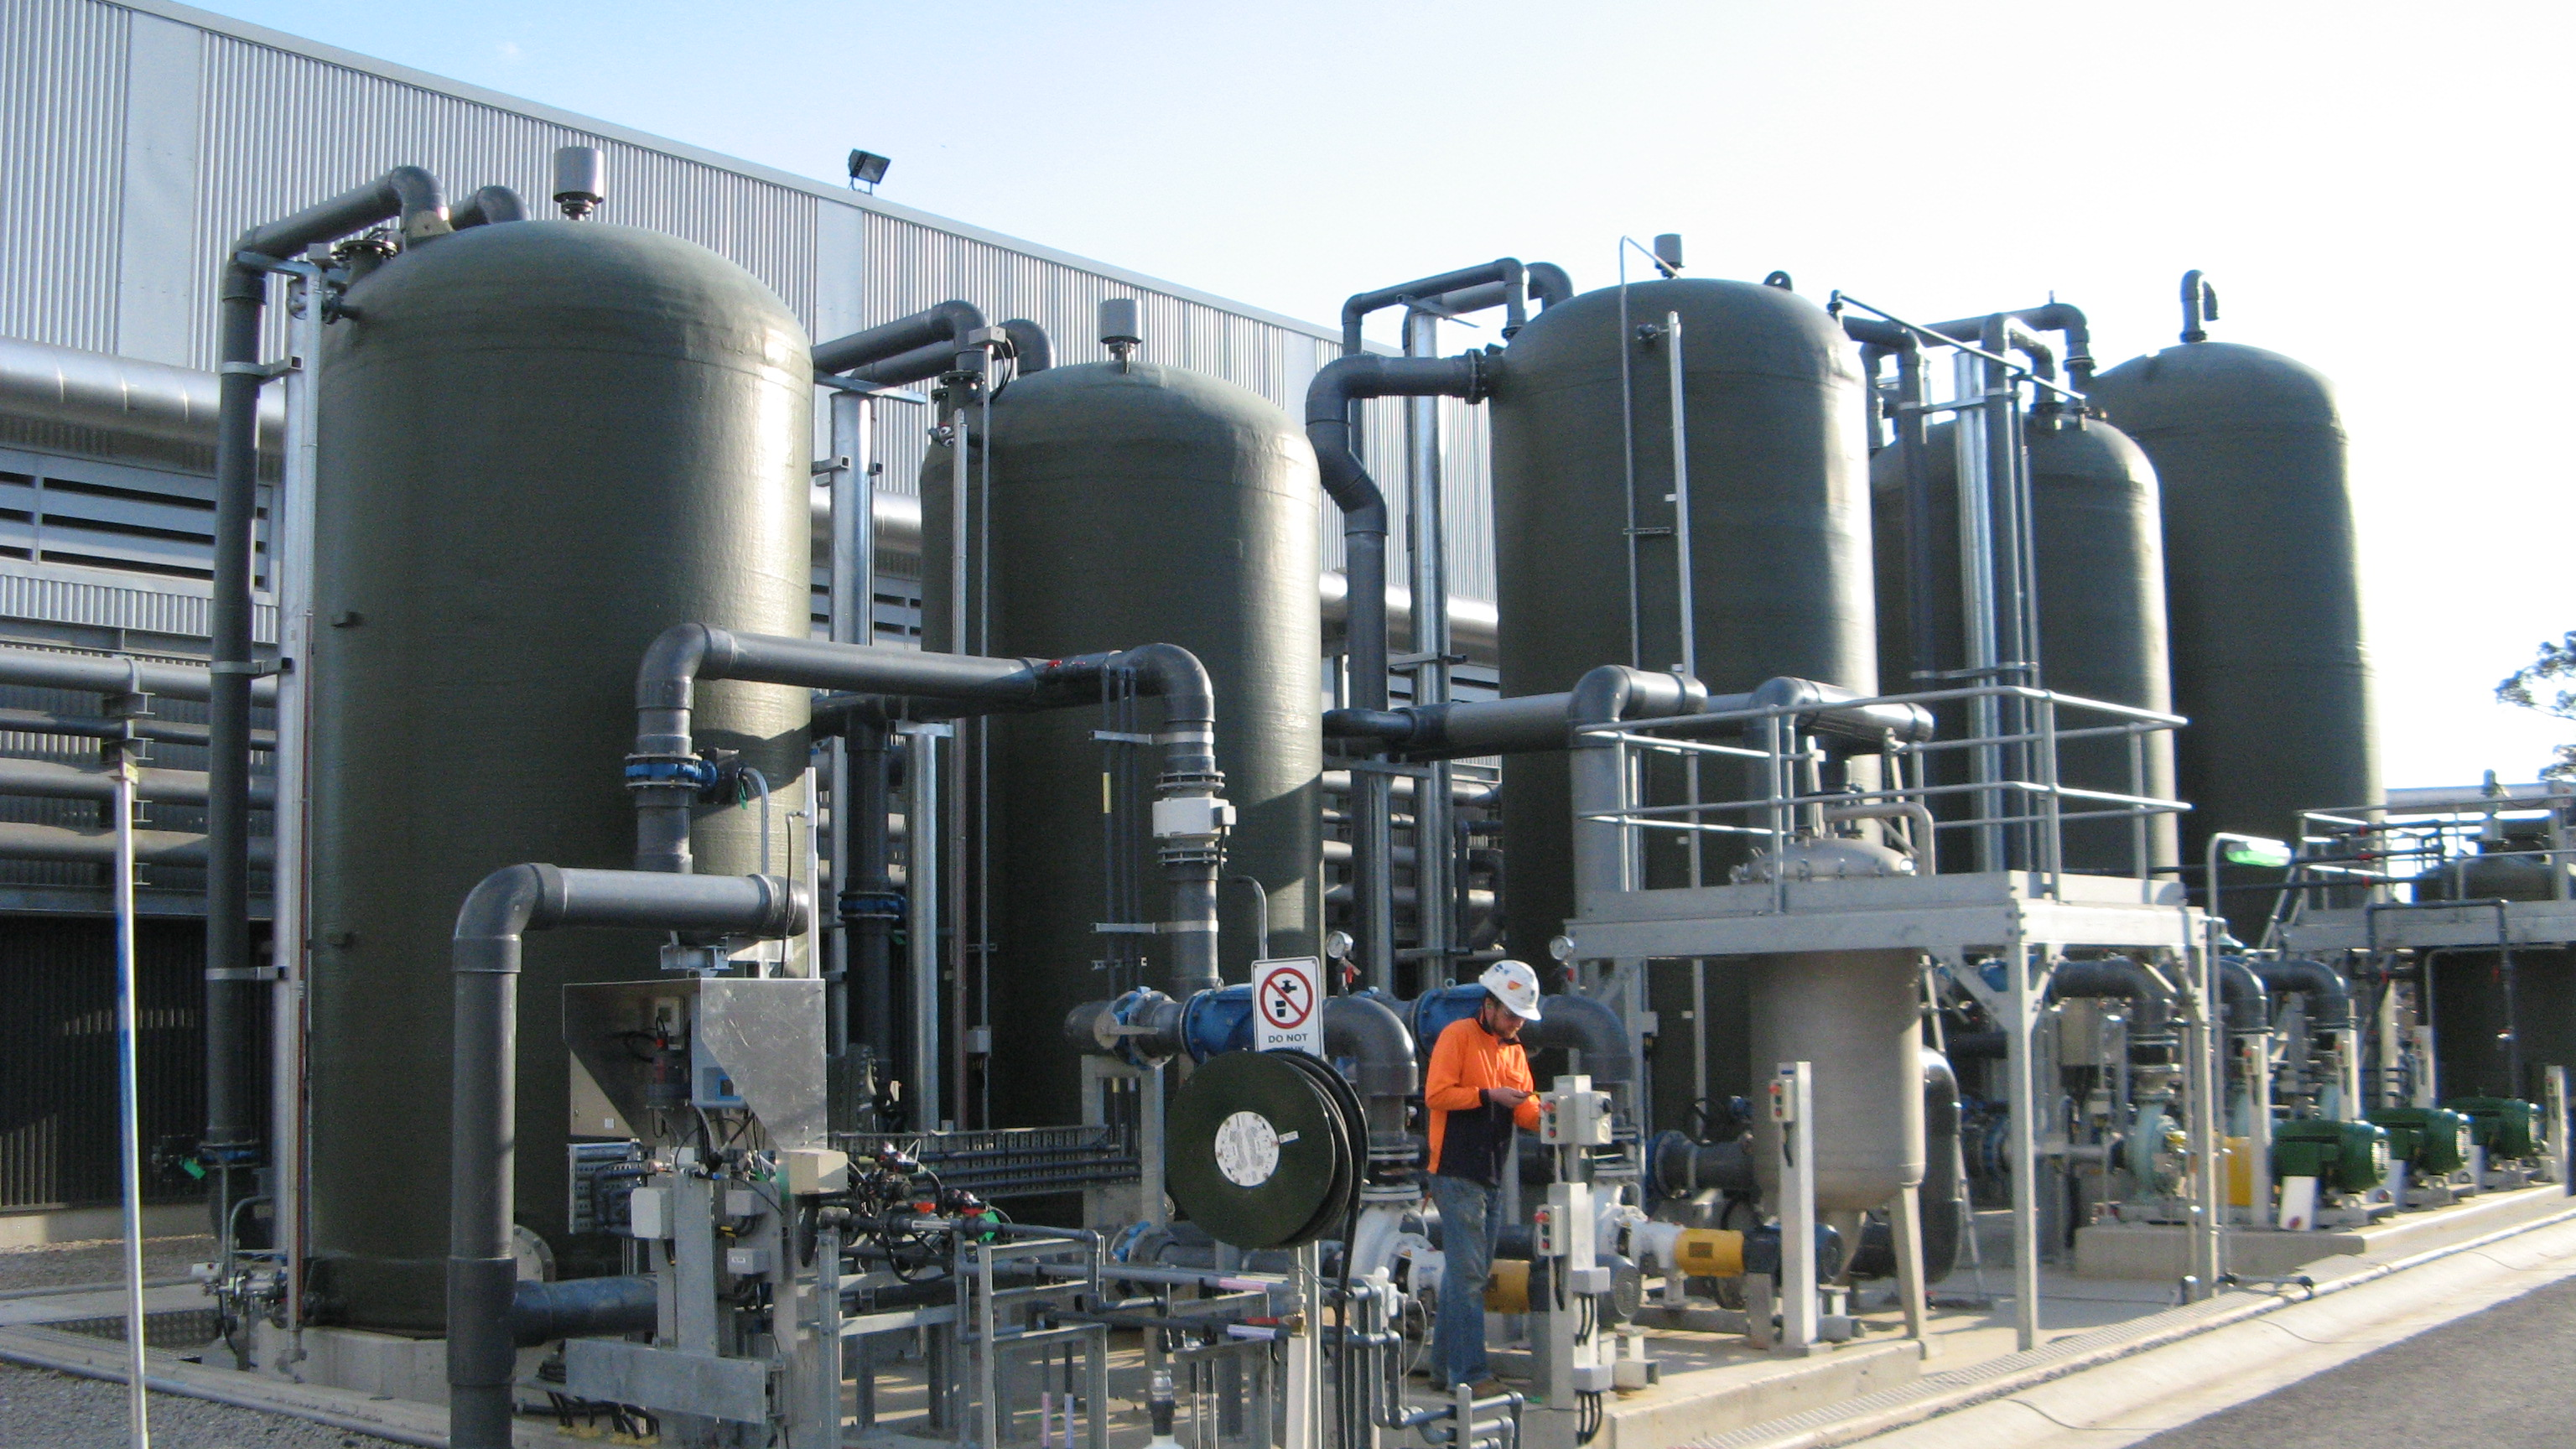 FRP-chemical-storage-tanks-01.jpg